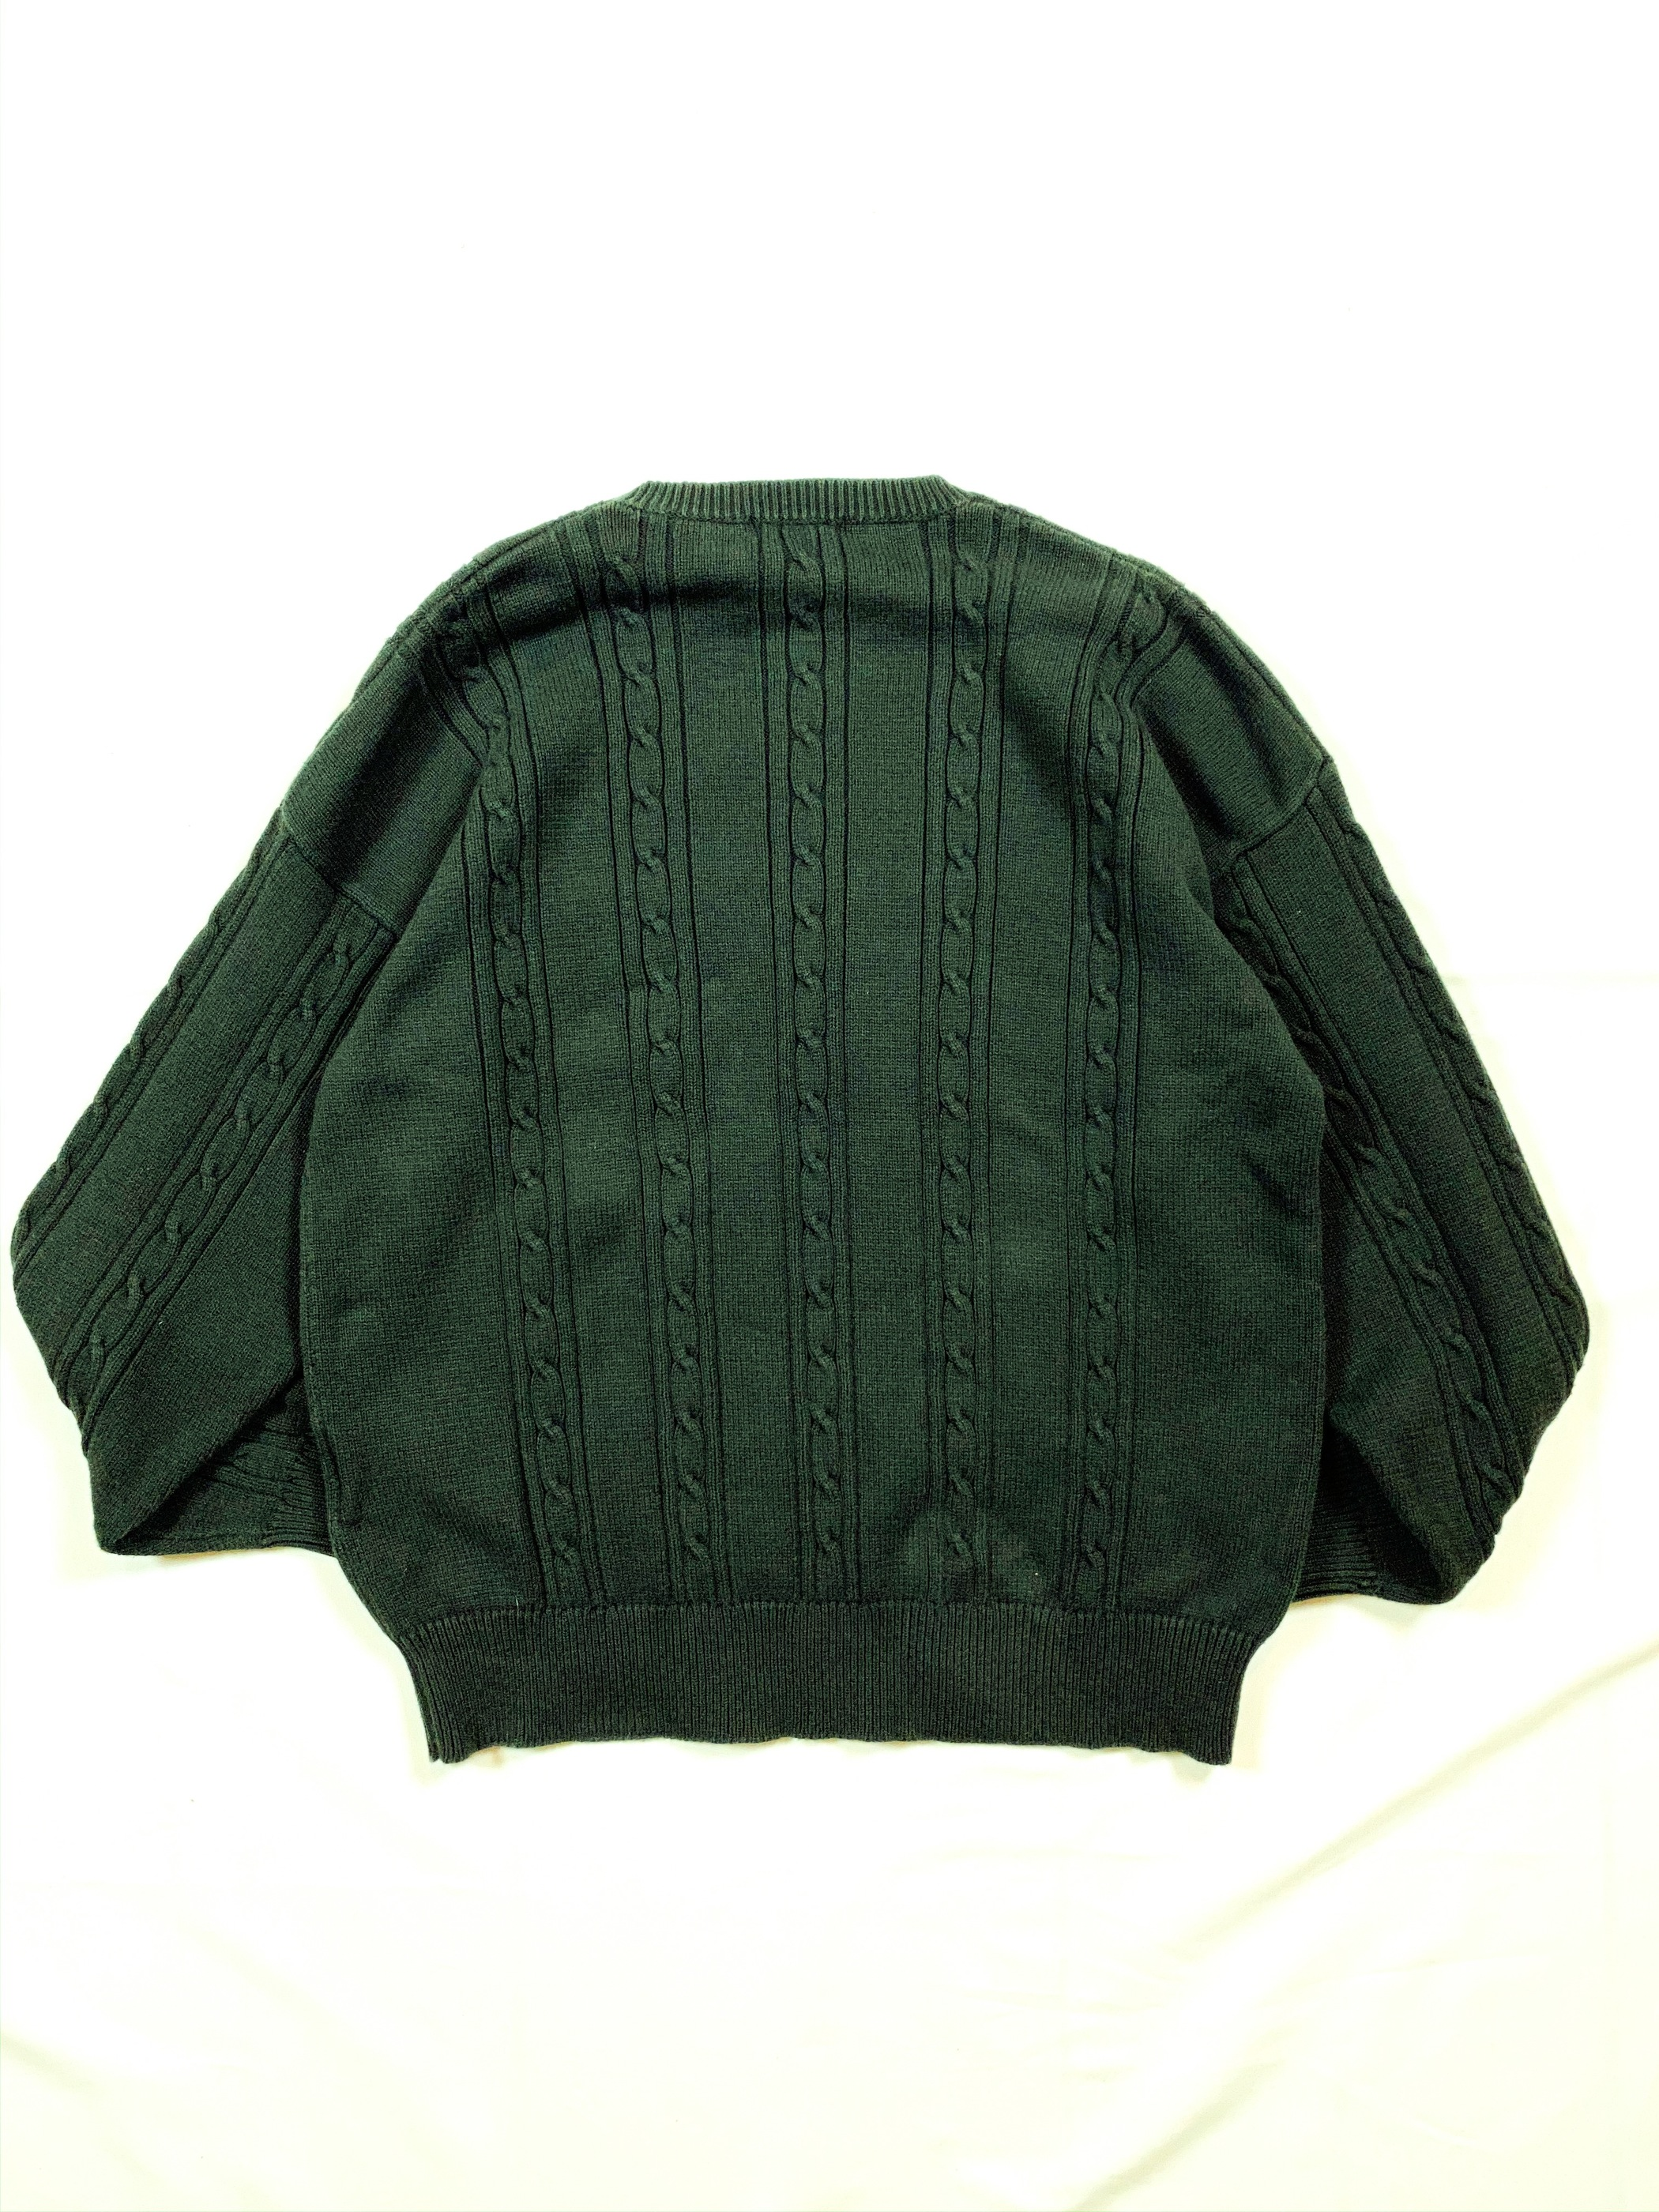 90's nautica cotton cable knit sweater